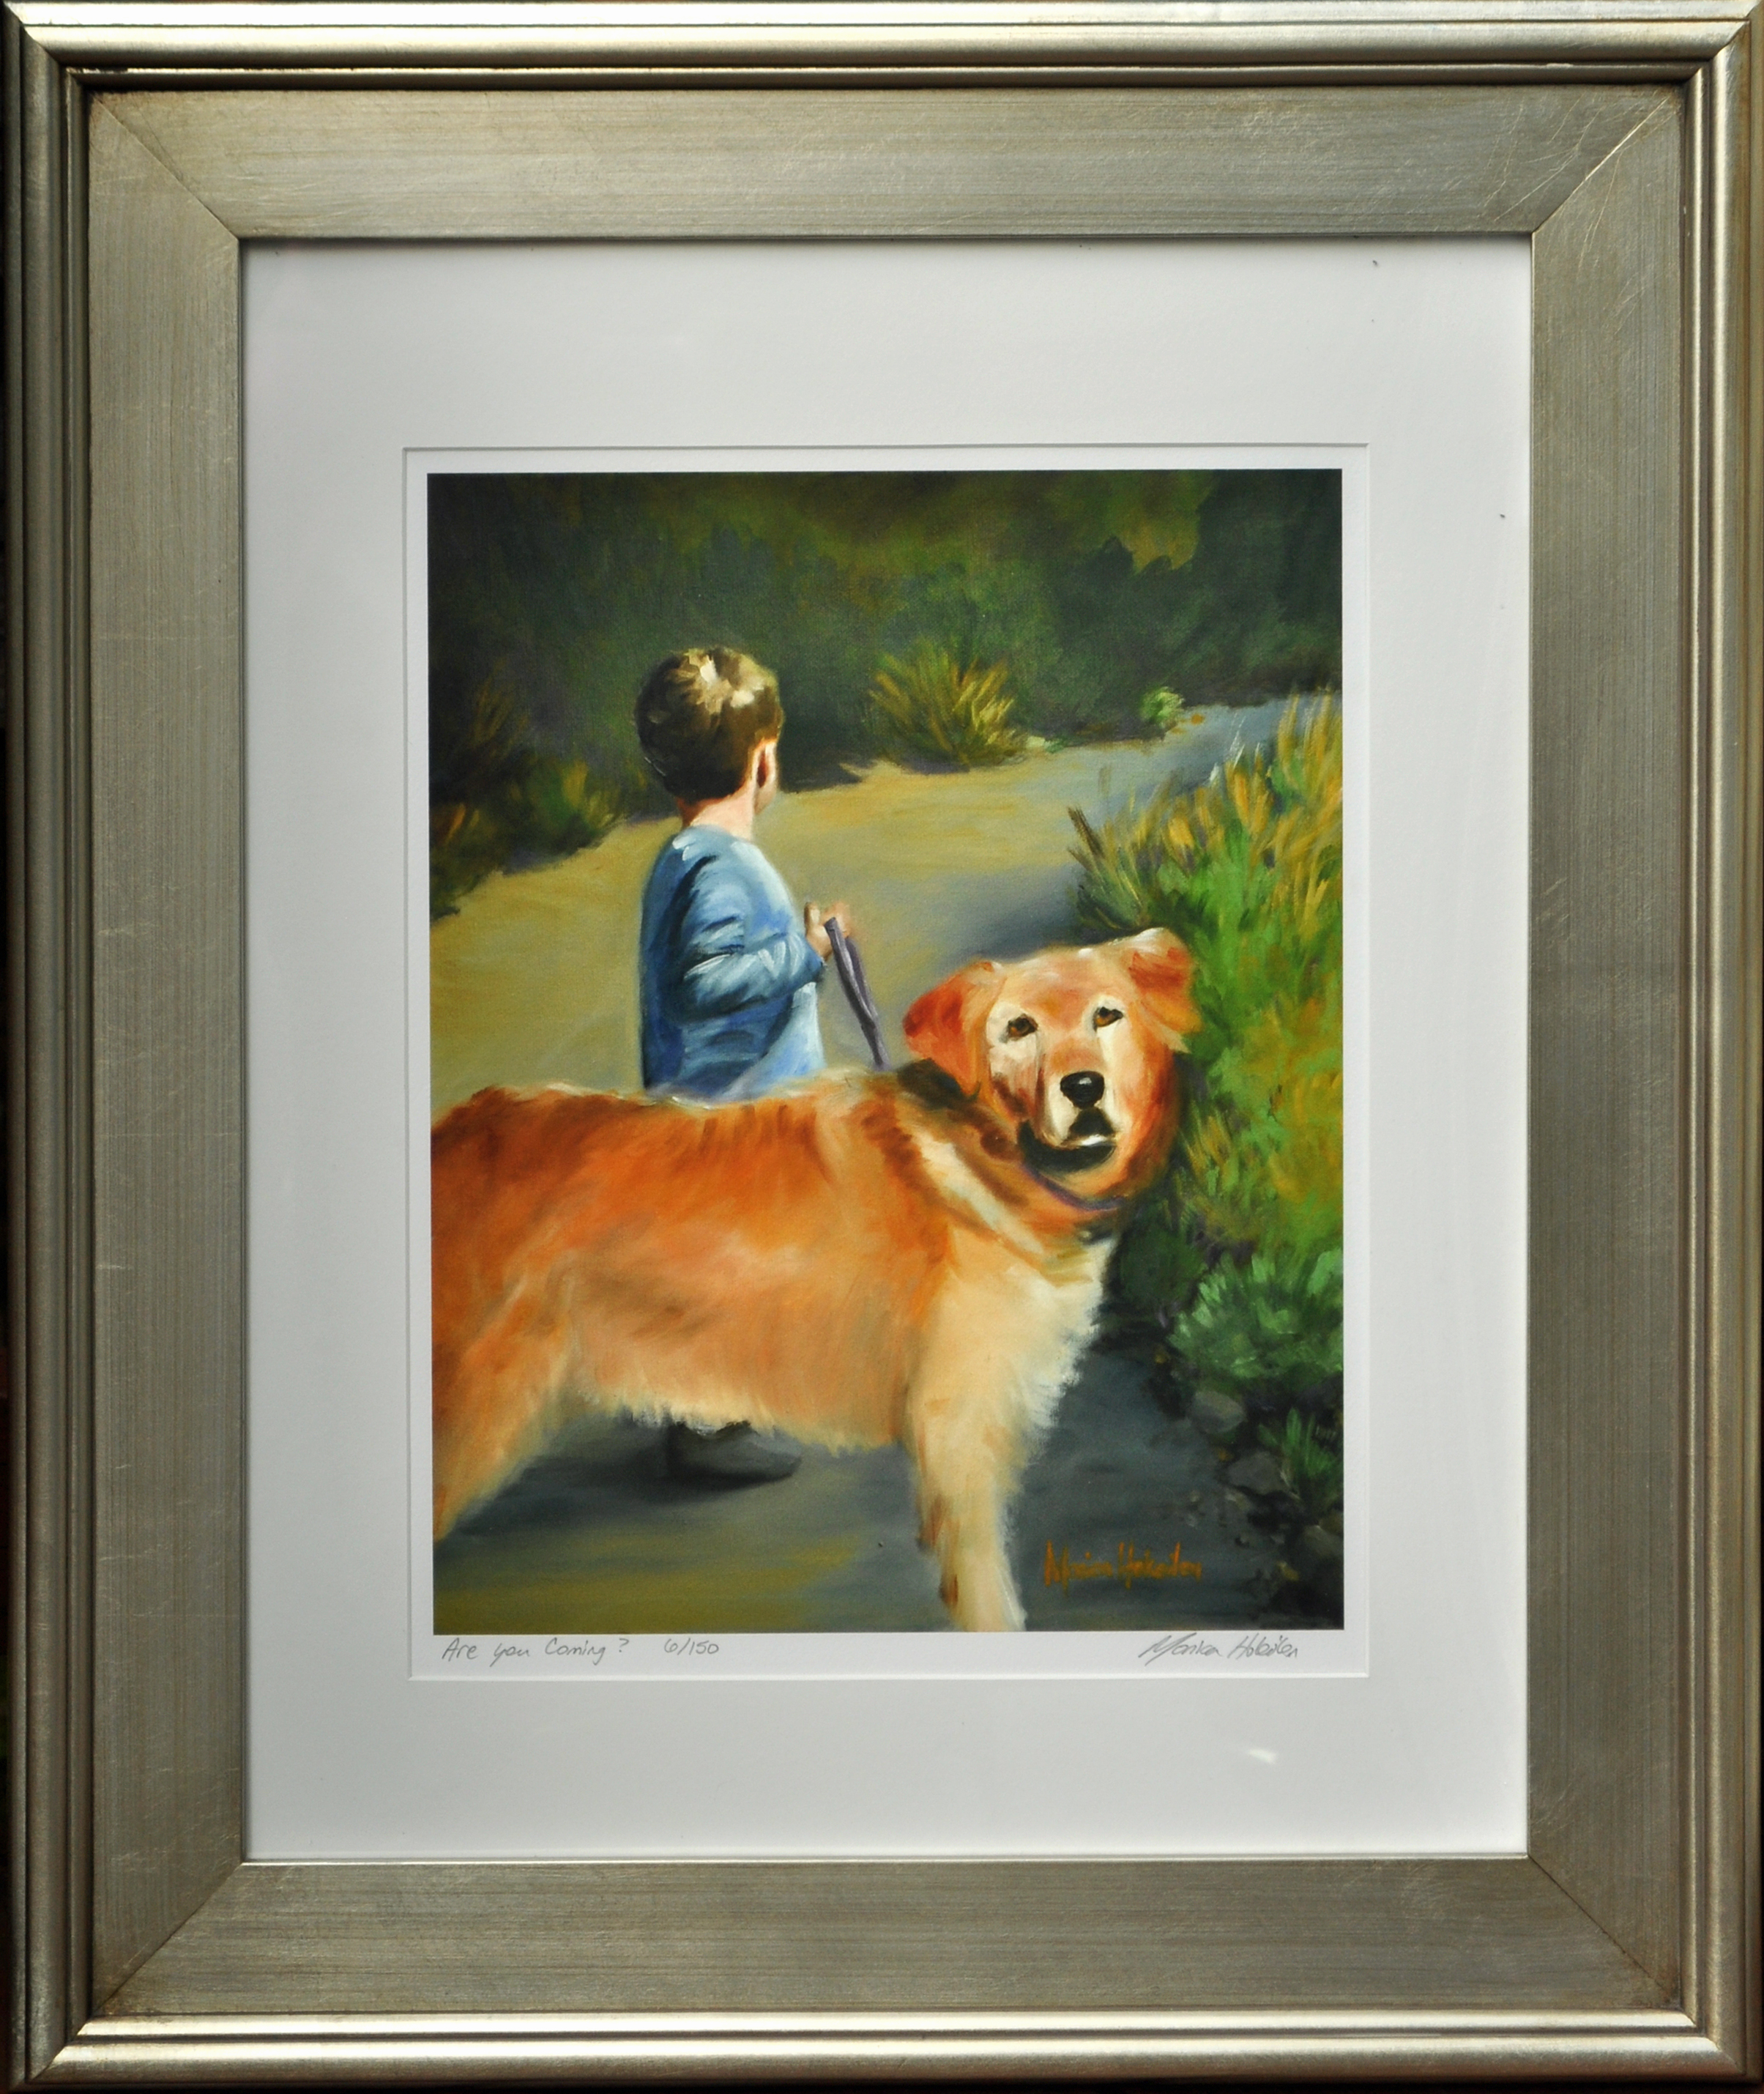 Are You Coming?, matted and framed fine art print